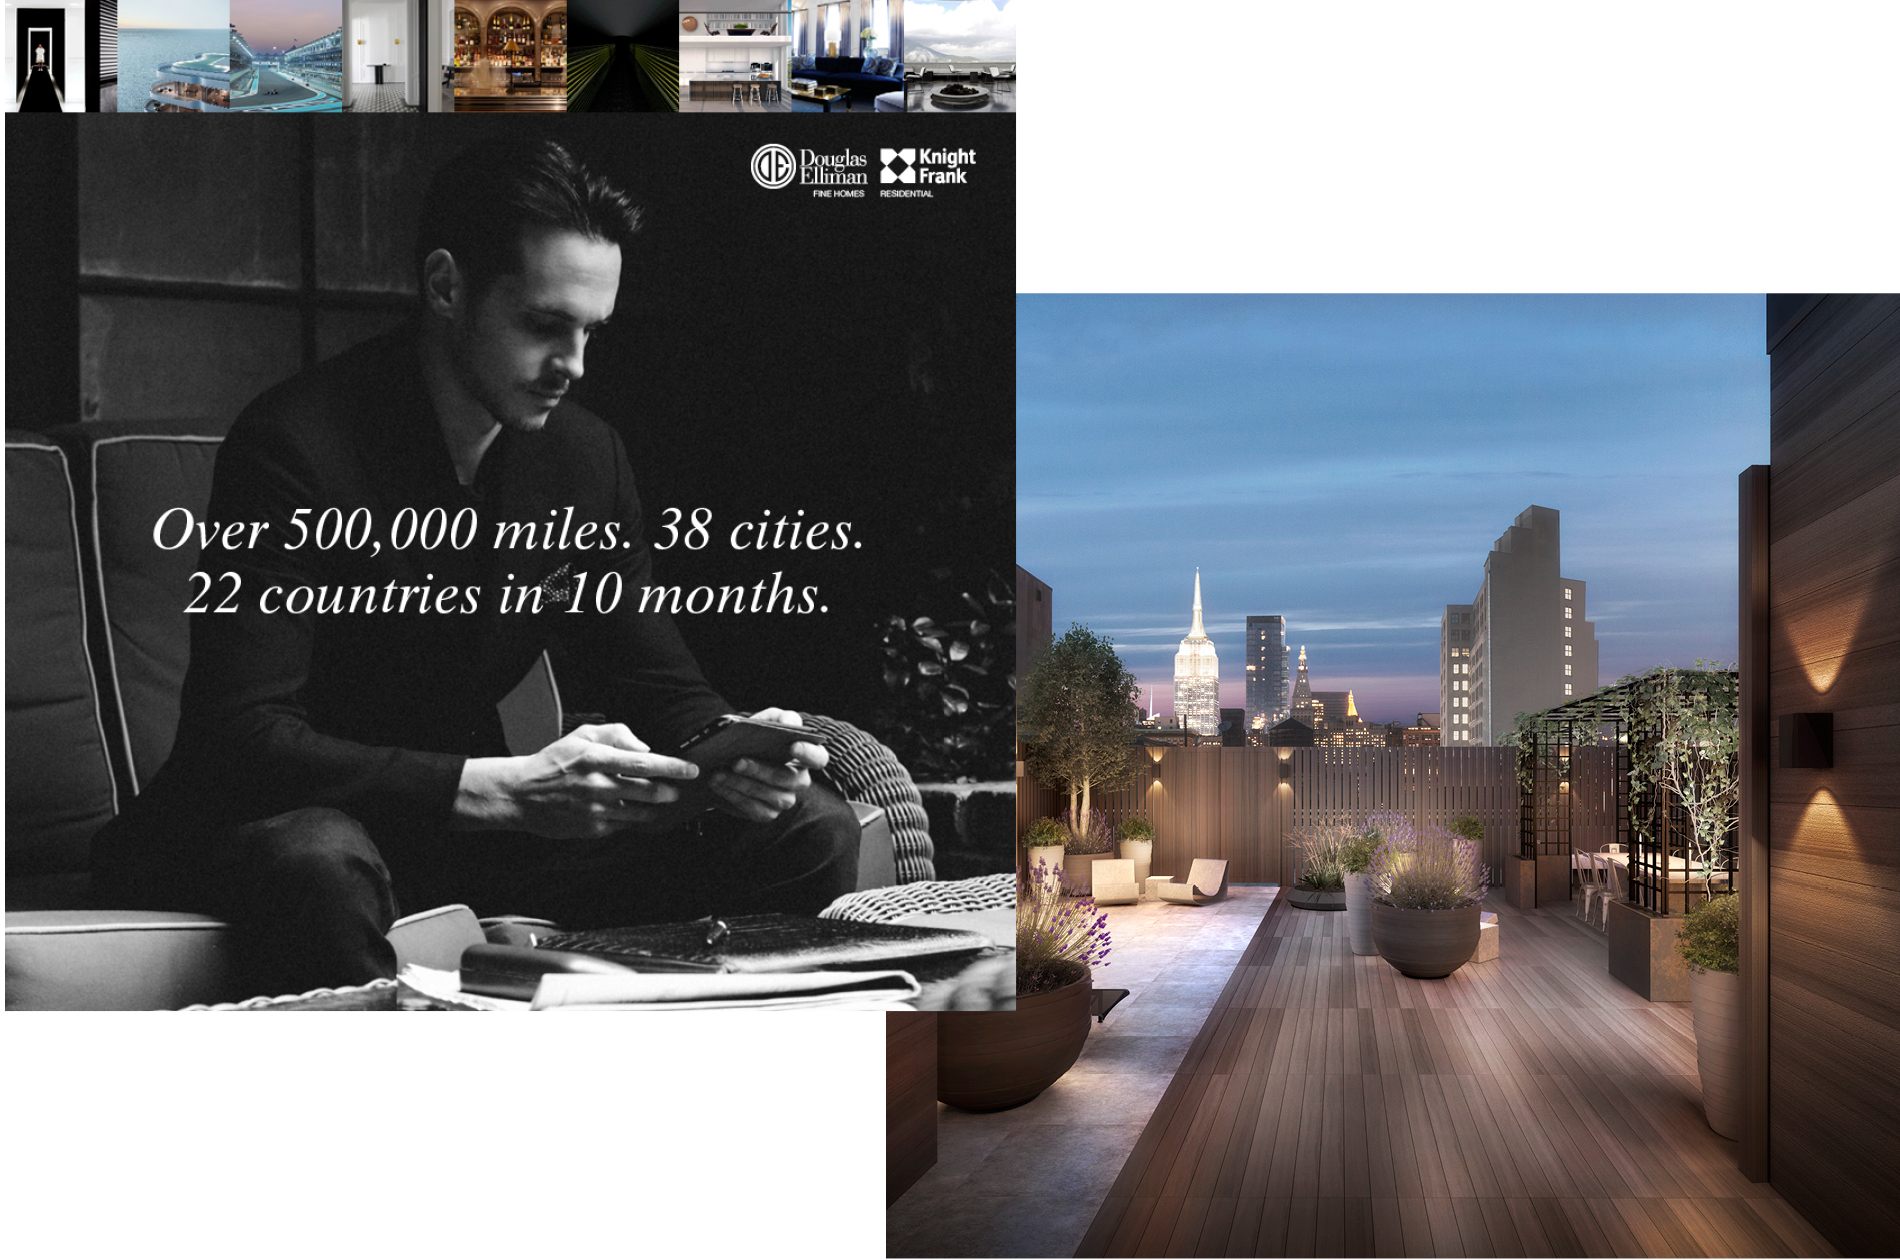 Richard L. Jordan's travels featured in a new luxury & travel infused editorial destination by DTE